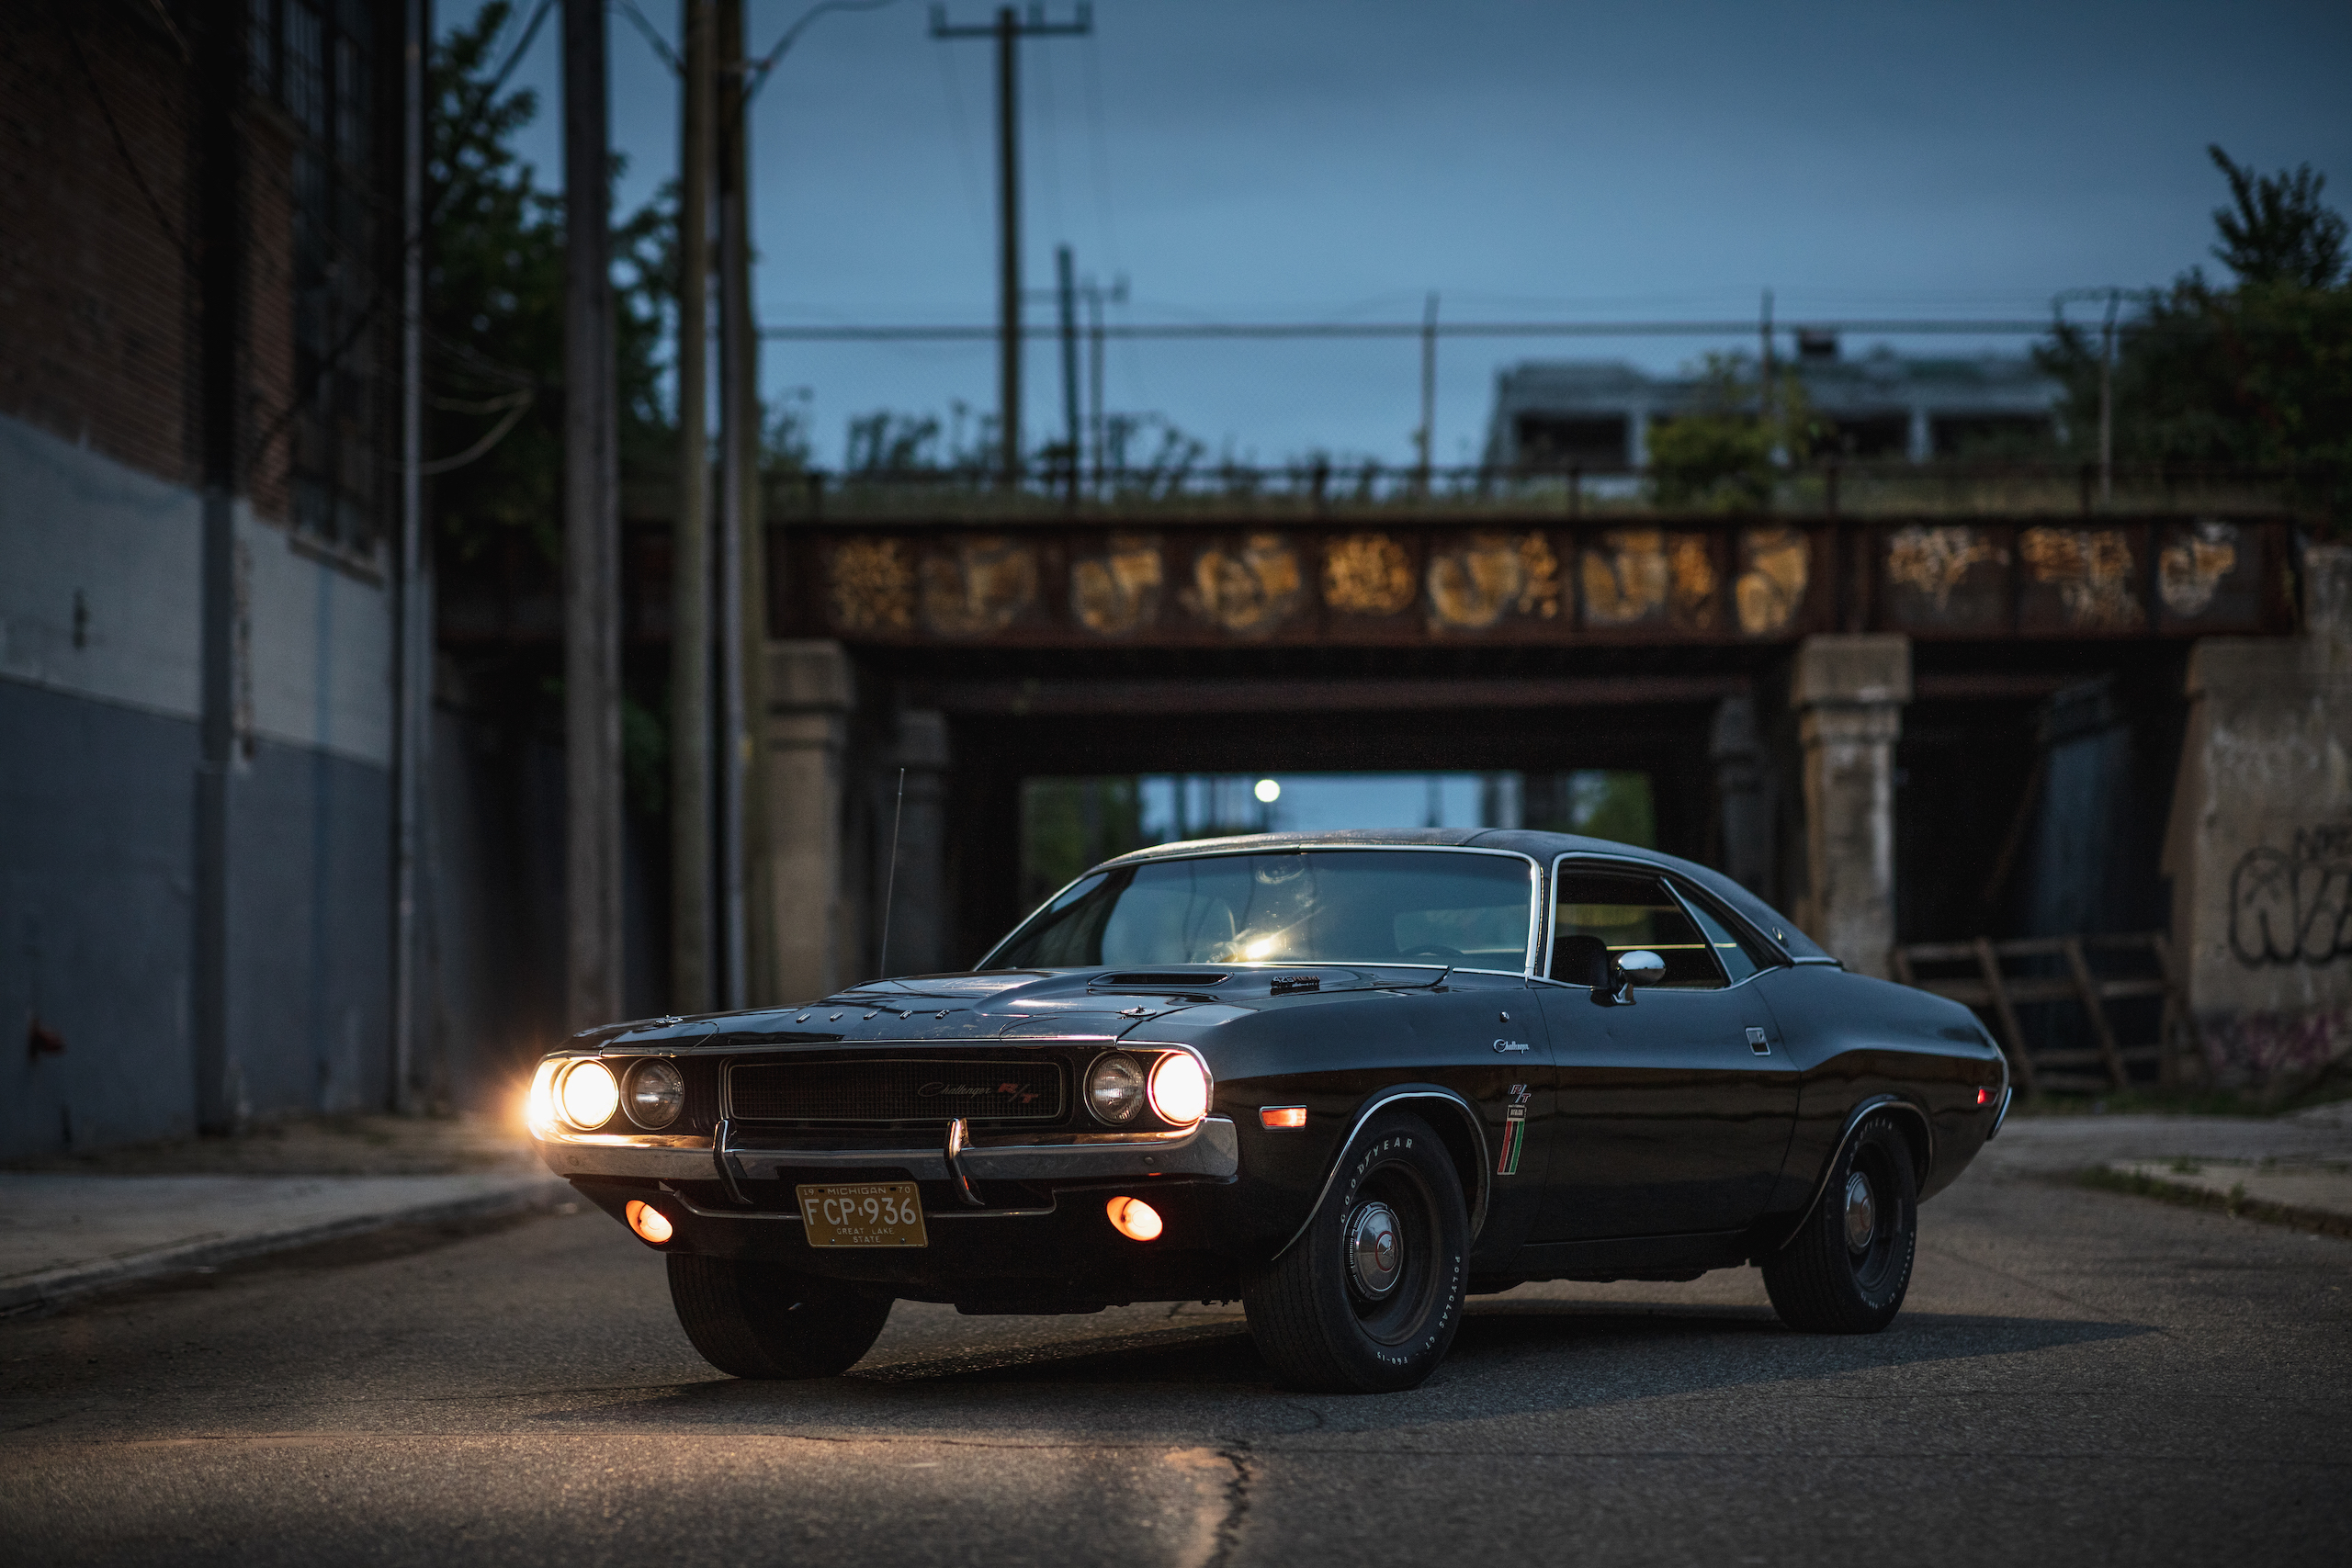 1970 Challenger front three-quarter after dusk